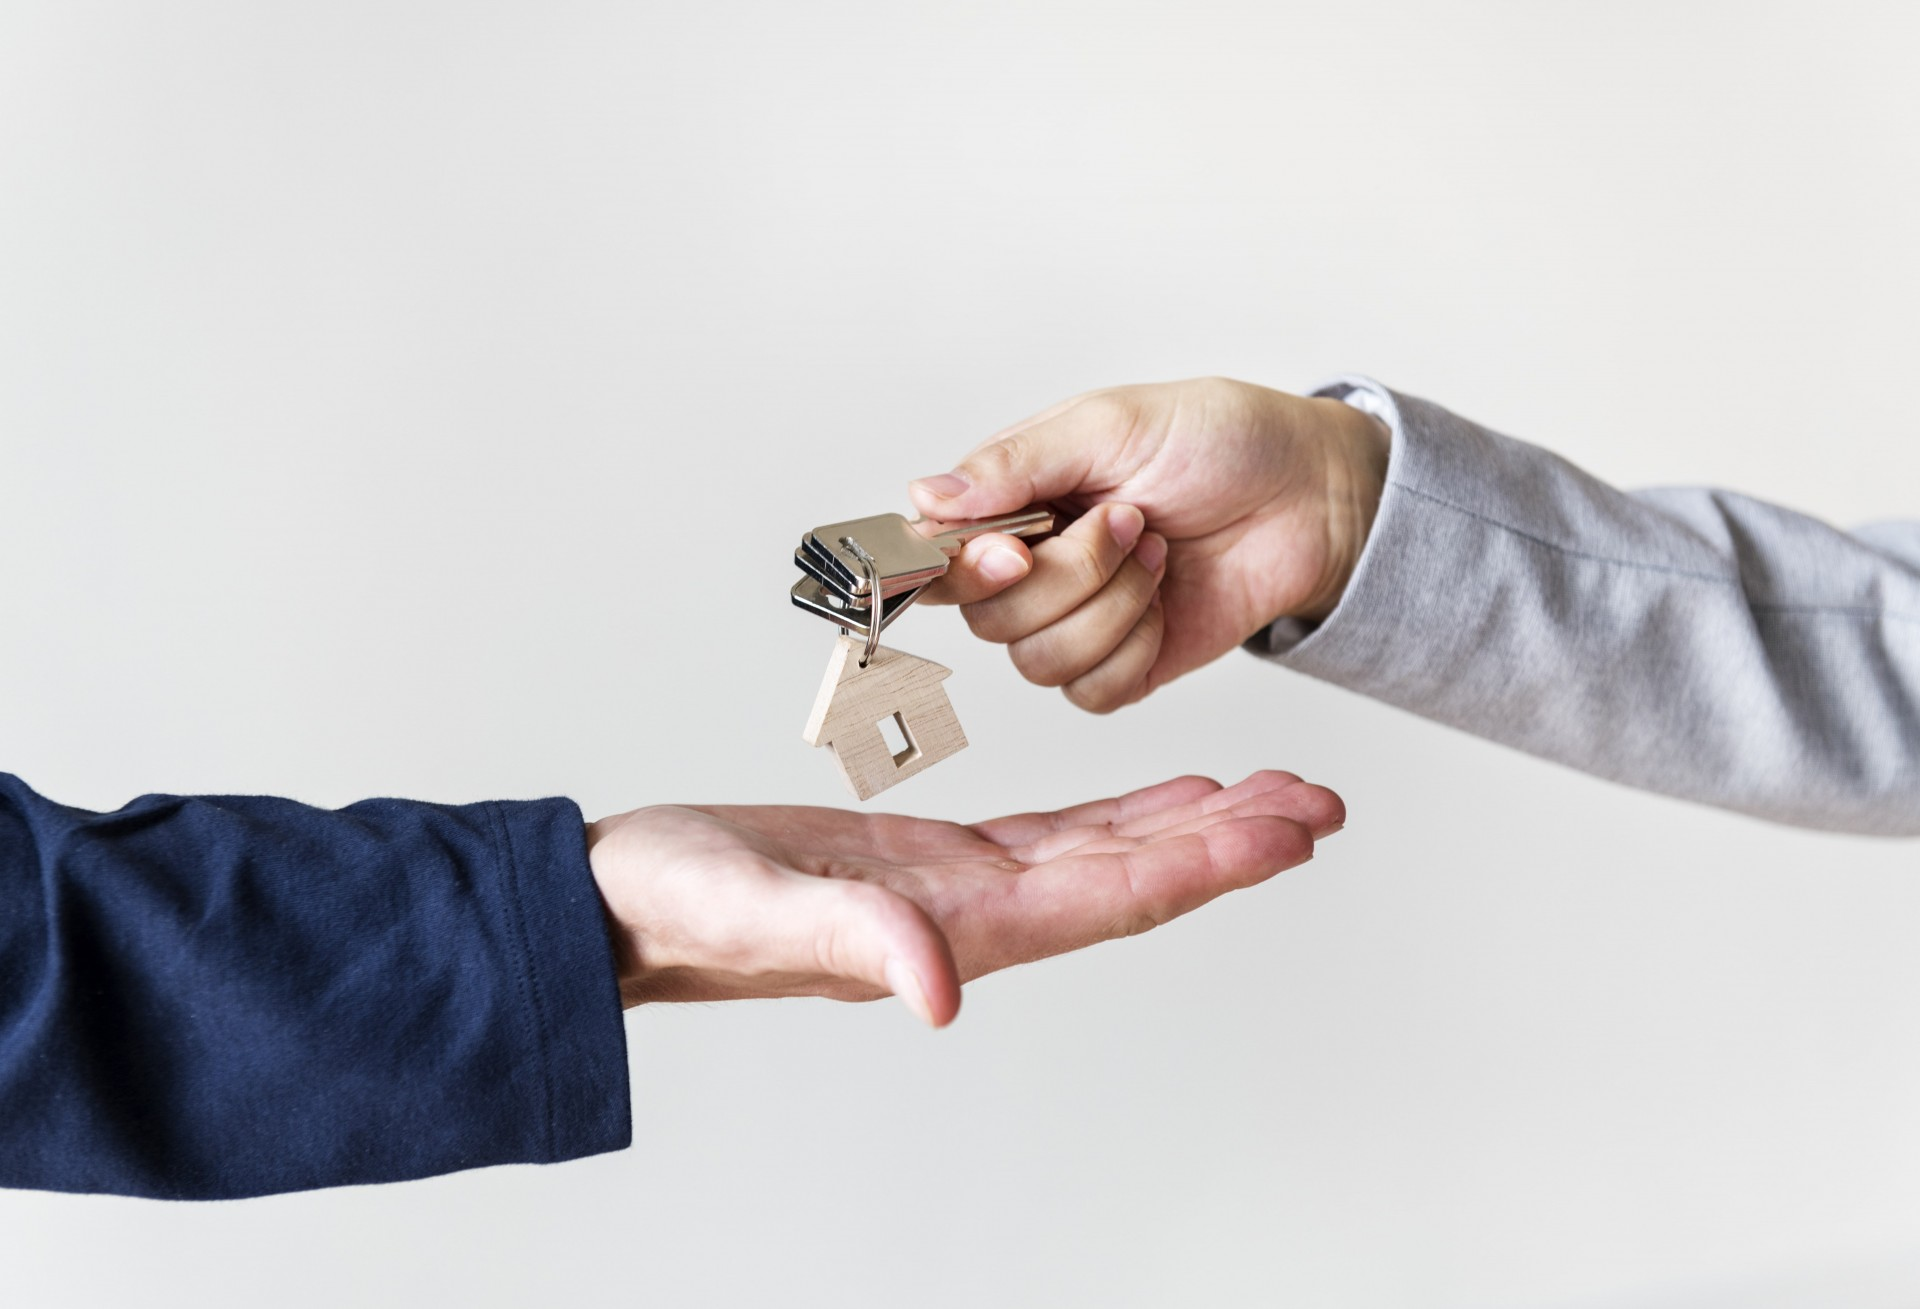 Questions to Ask a Motivated Seller